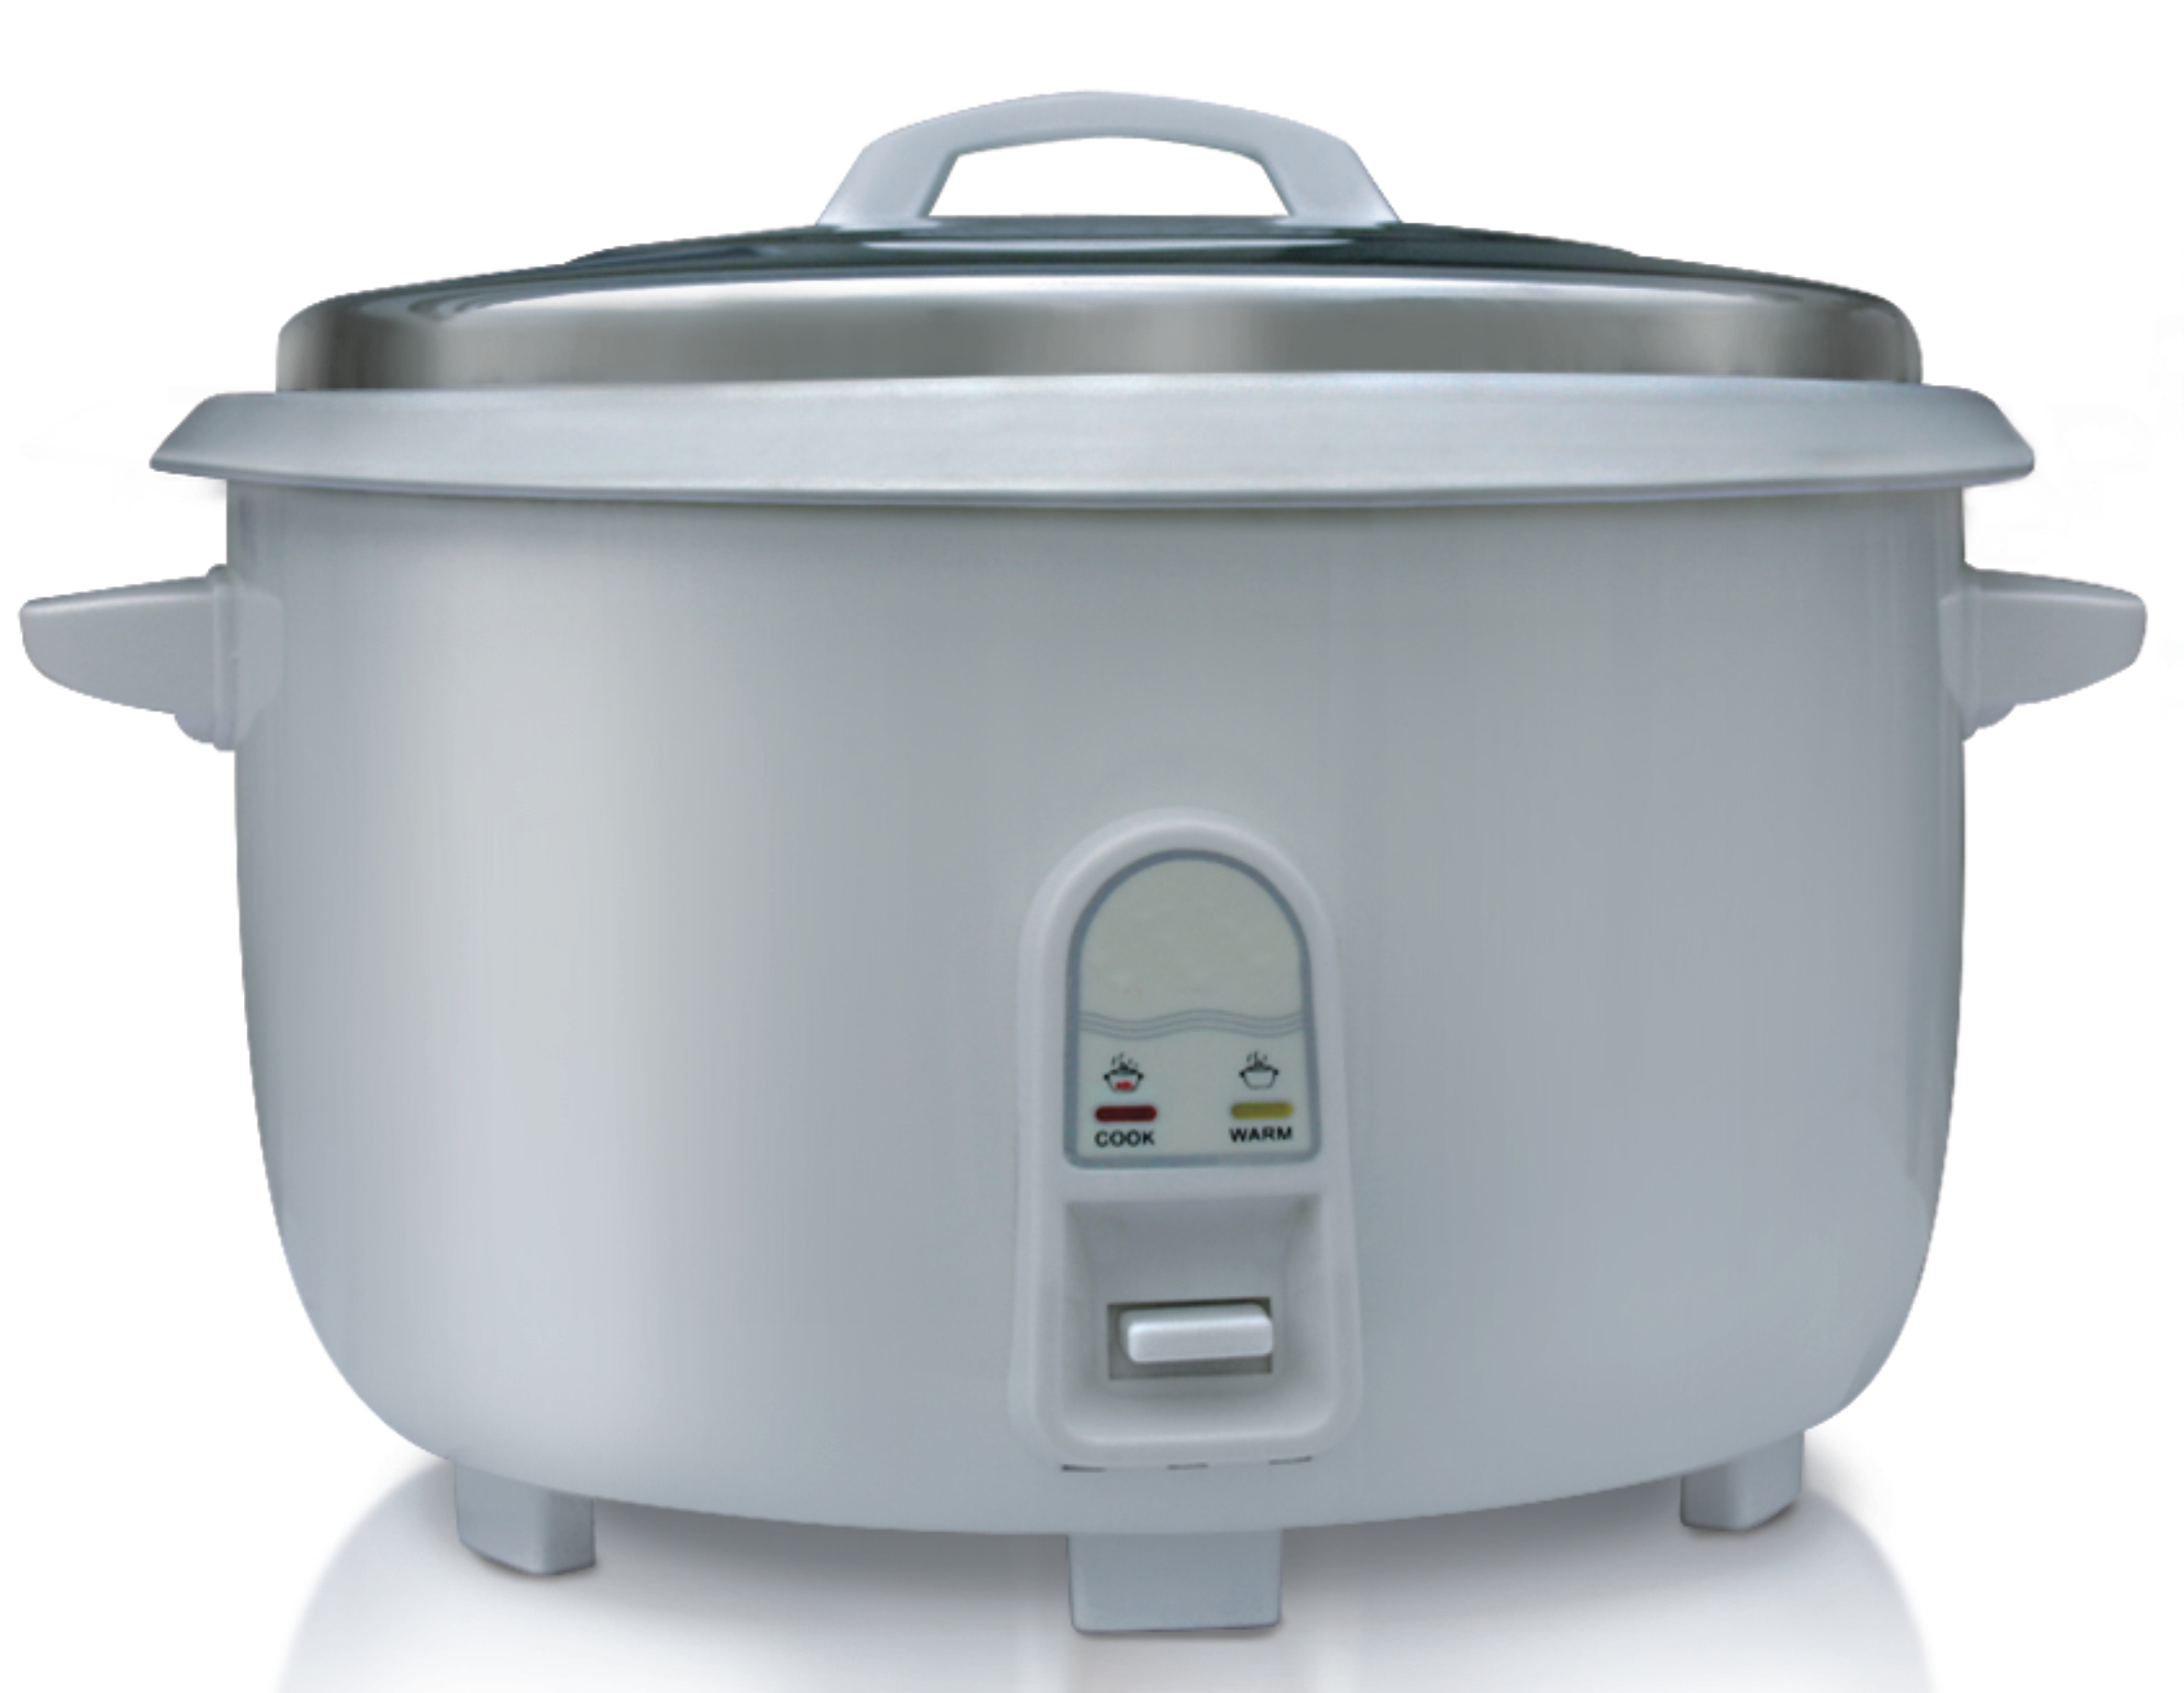 Drum rice cooker TPGB100-01